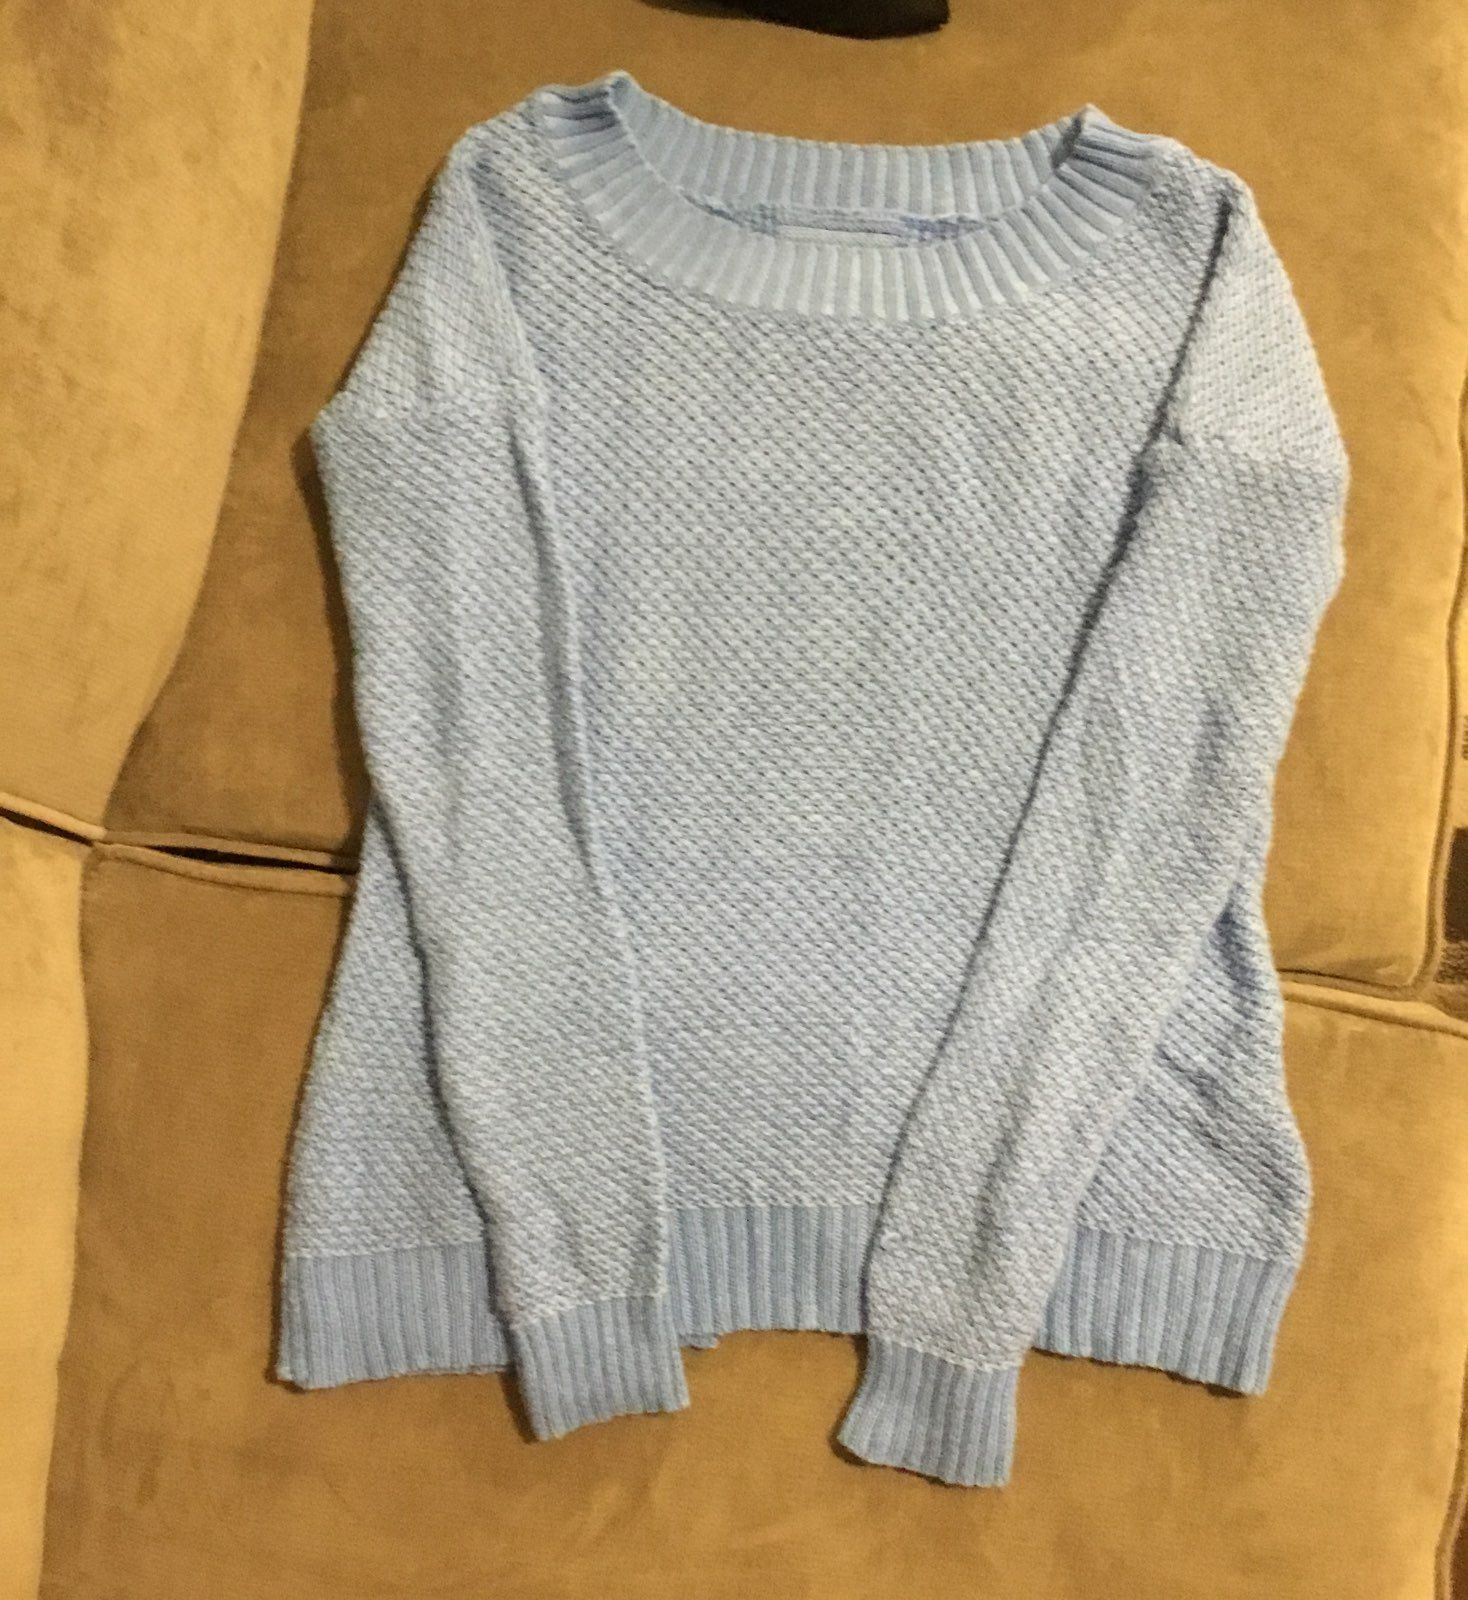 Lightweight Heather Blue Sweater - Mercari: BUY & SELL THINGS YOU LOVE